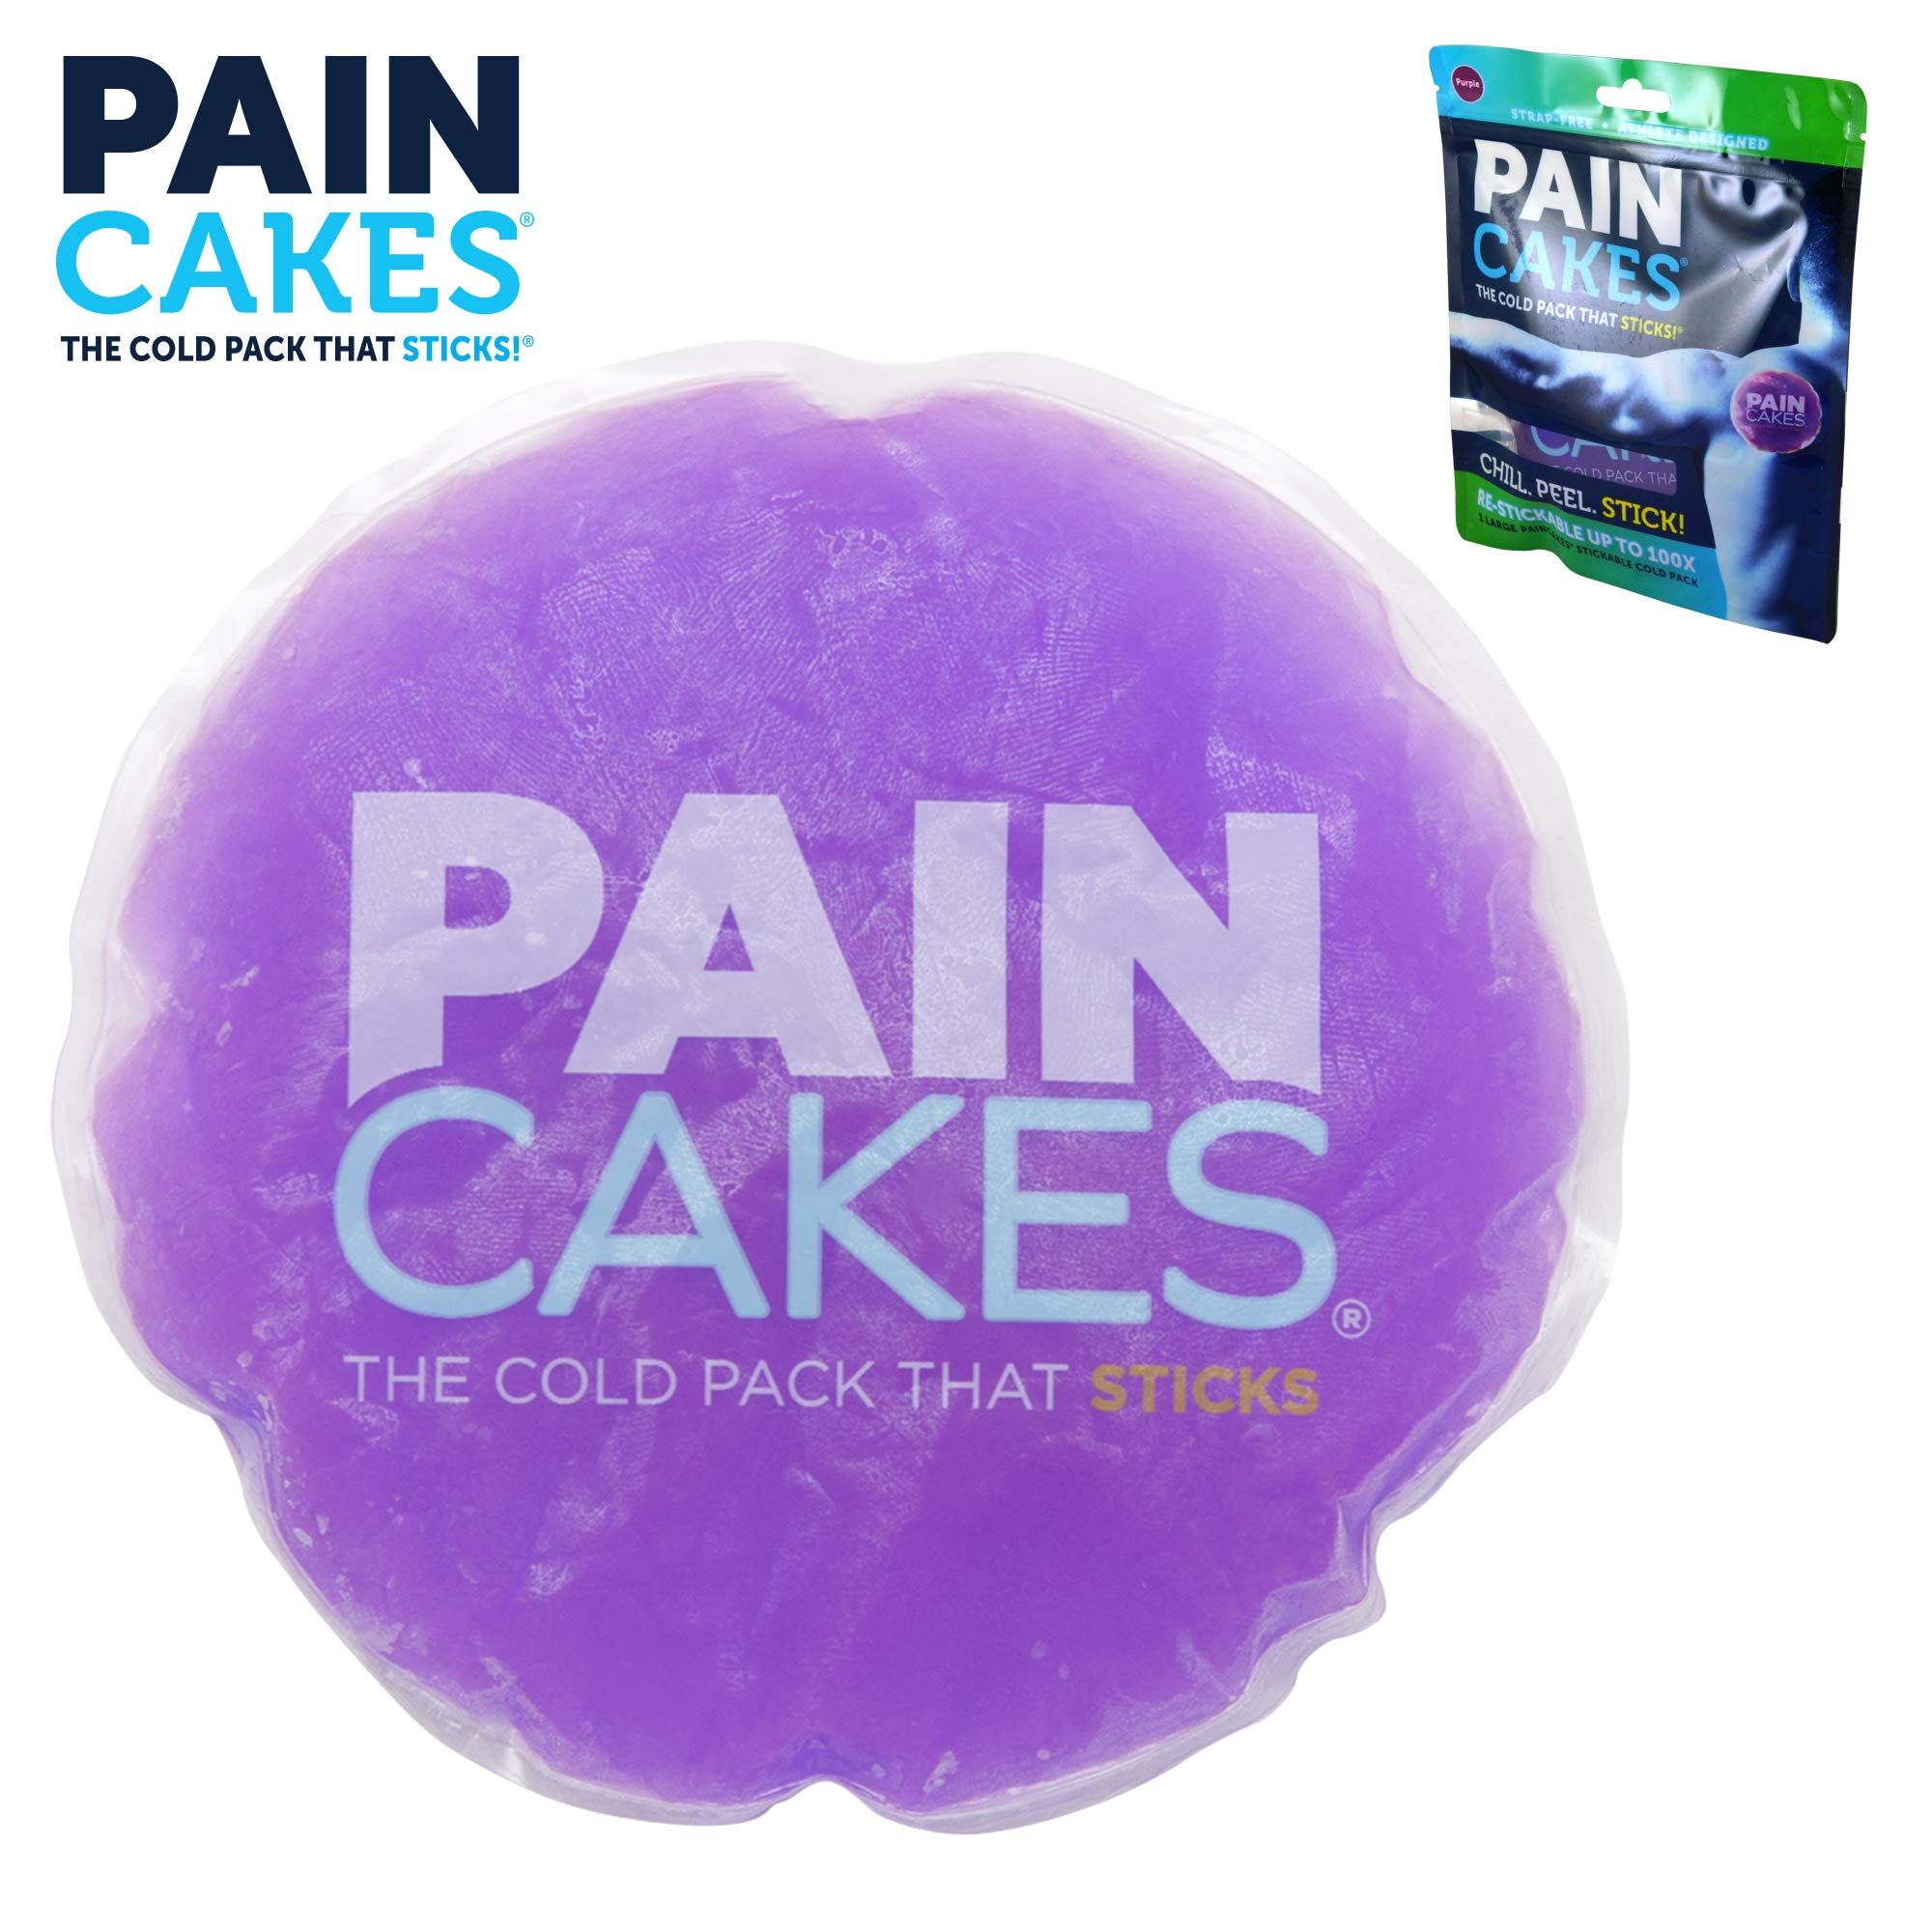 PAINCAKES The Cold Pack That Sticks & Stays in Place- Reusable Cold Therapy Ice Pack Conforms to Body, 1 Large (Purple- 5'')